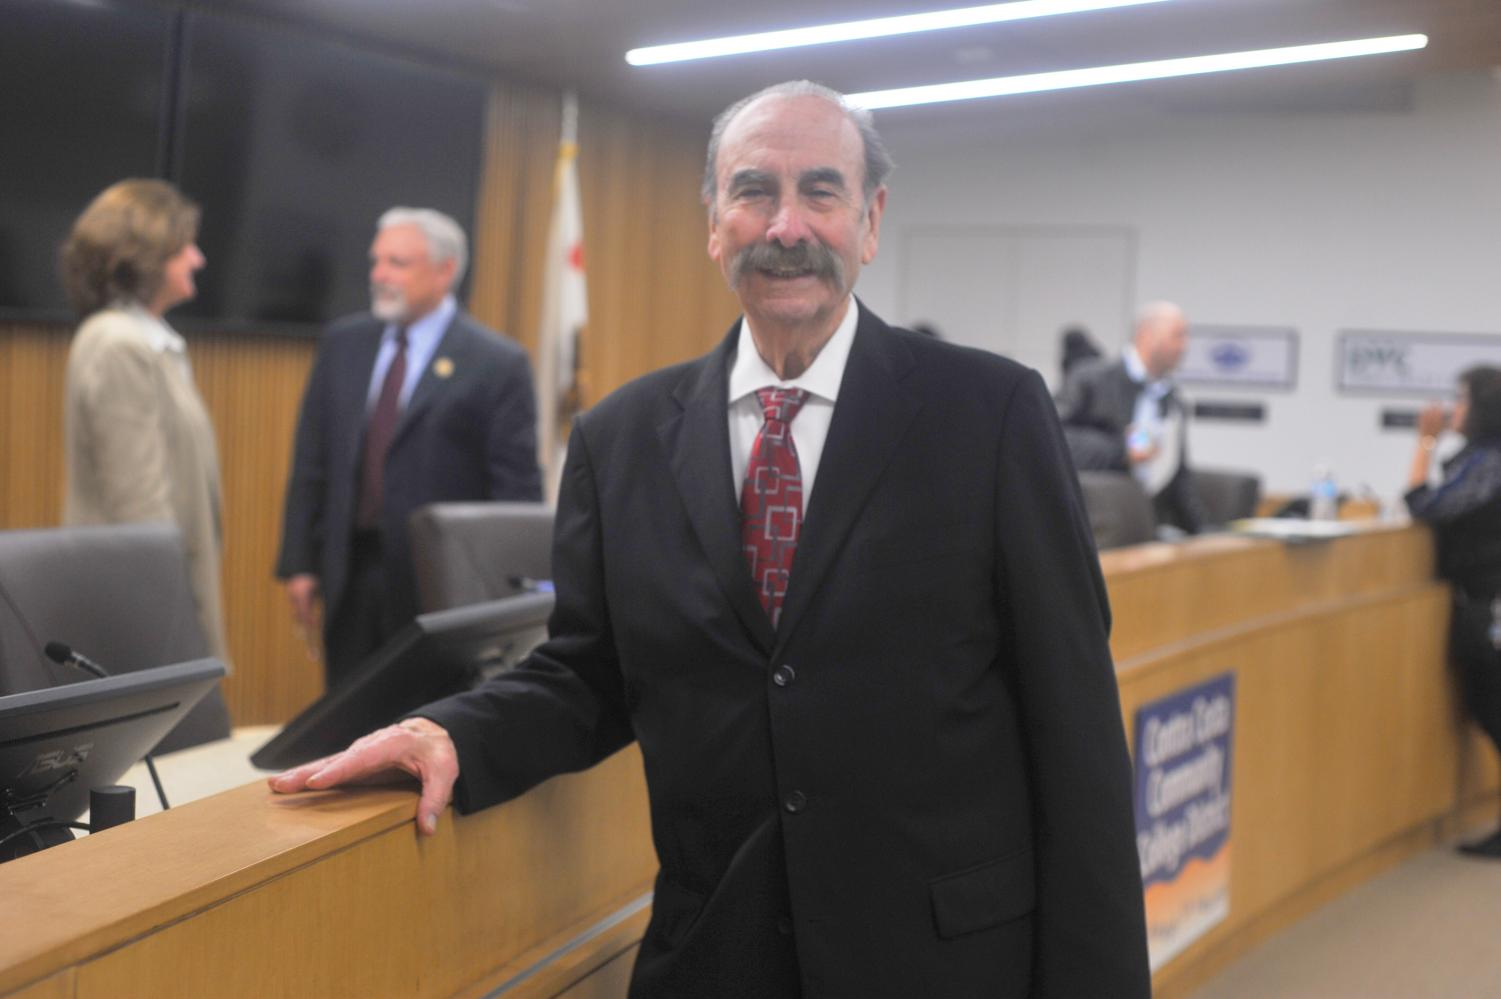 Contra Costa Community College  District Ward I Trustee John Marquez  was elected president of the Governing Board  on Monday after the resignation of former president Timothy Farley.